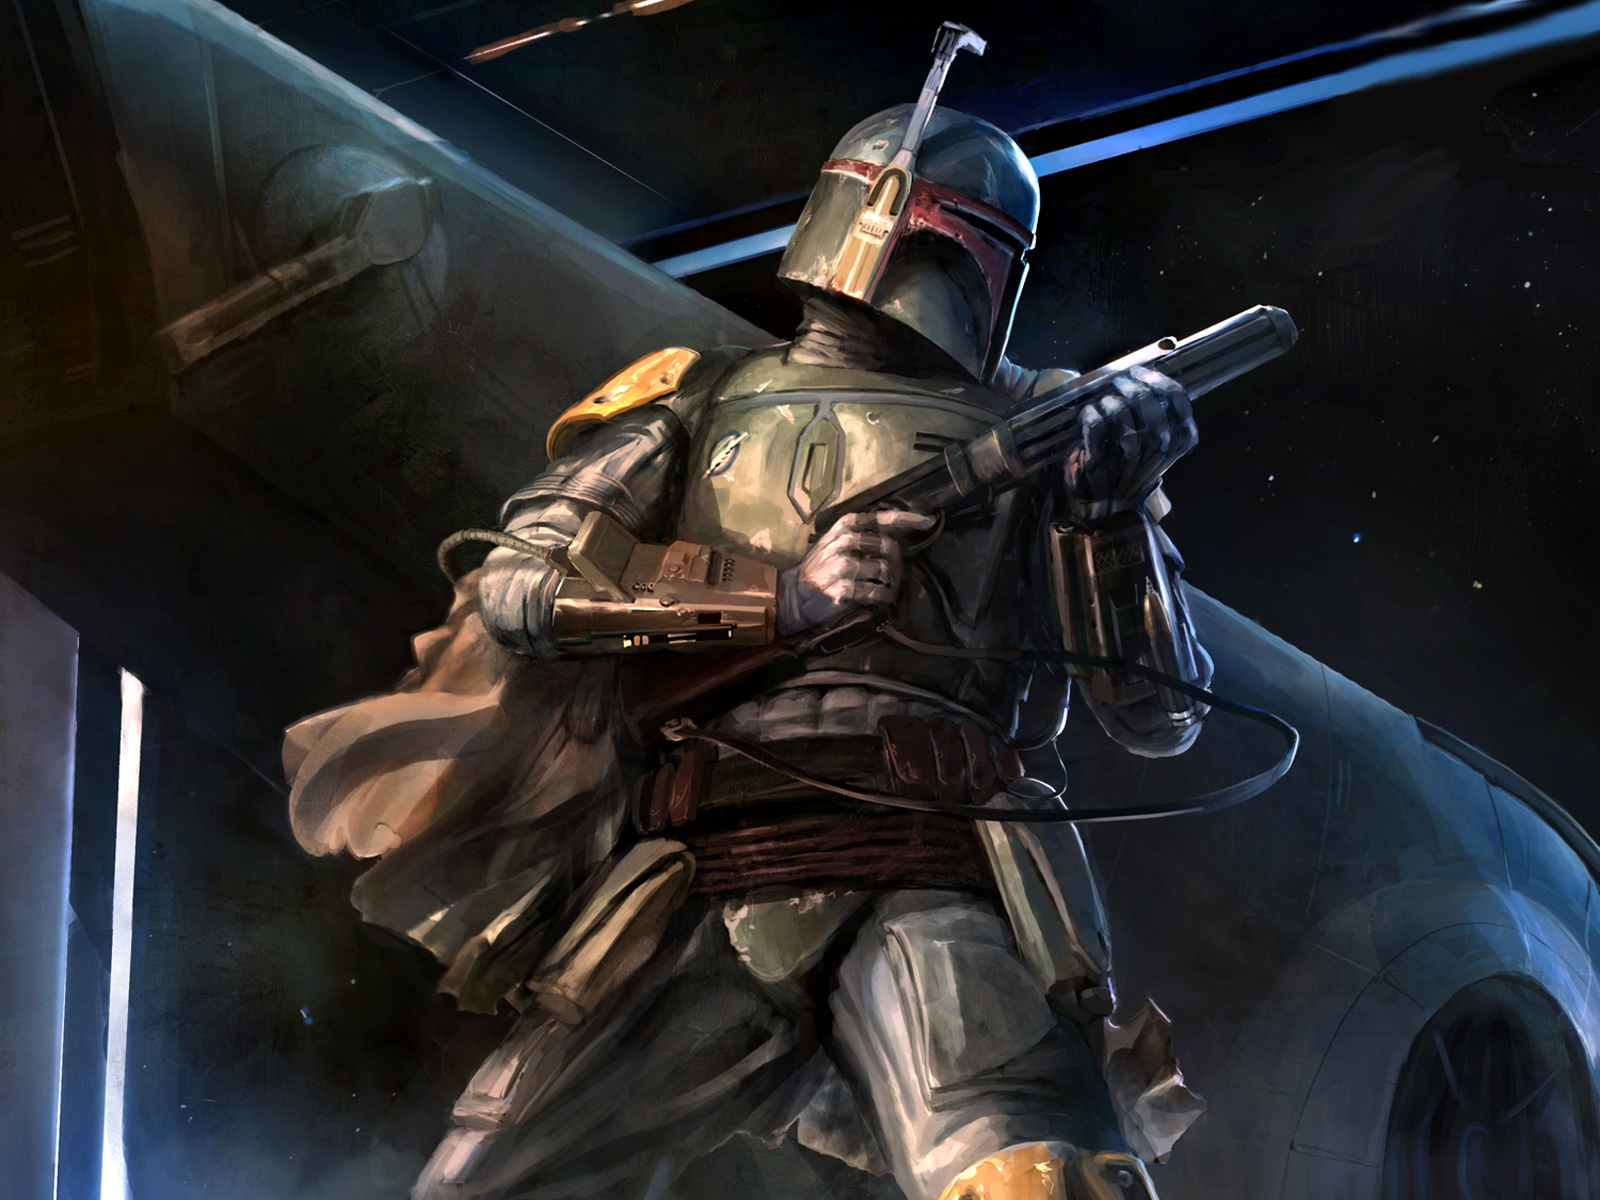 Star WarsBoba Fett Wallpaper by TheRenegade on DeviantArt